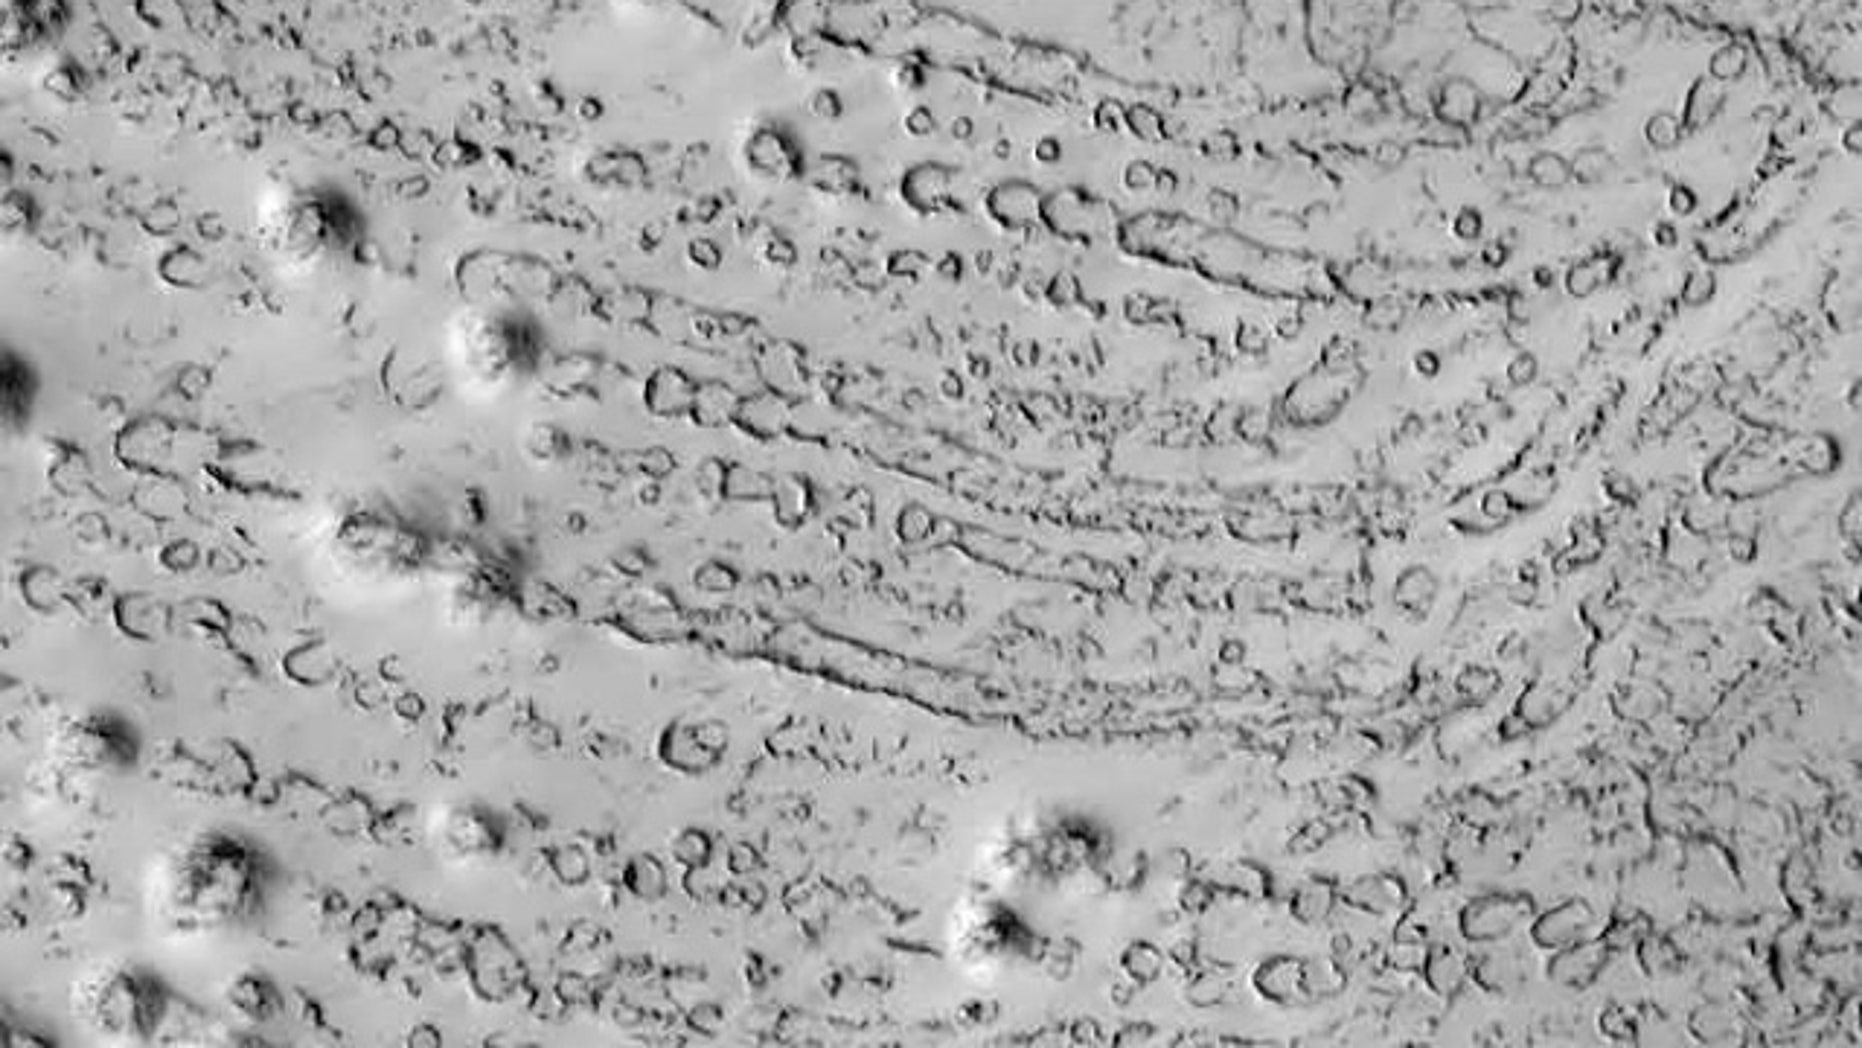 Chains of crater marks on Mars such as these could have been made by icebergs rolling across ancient Martian ocean floors, researchers suggest.